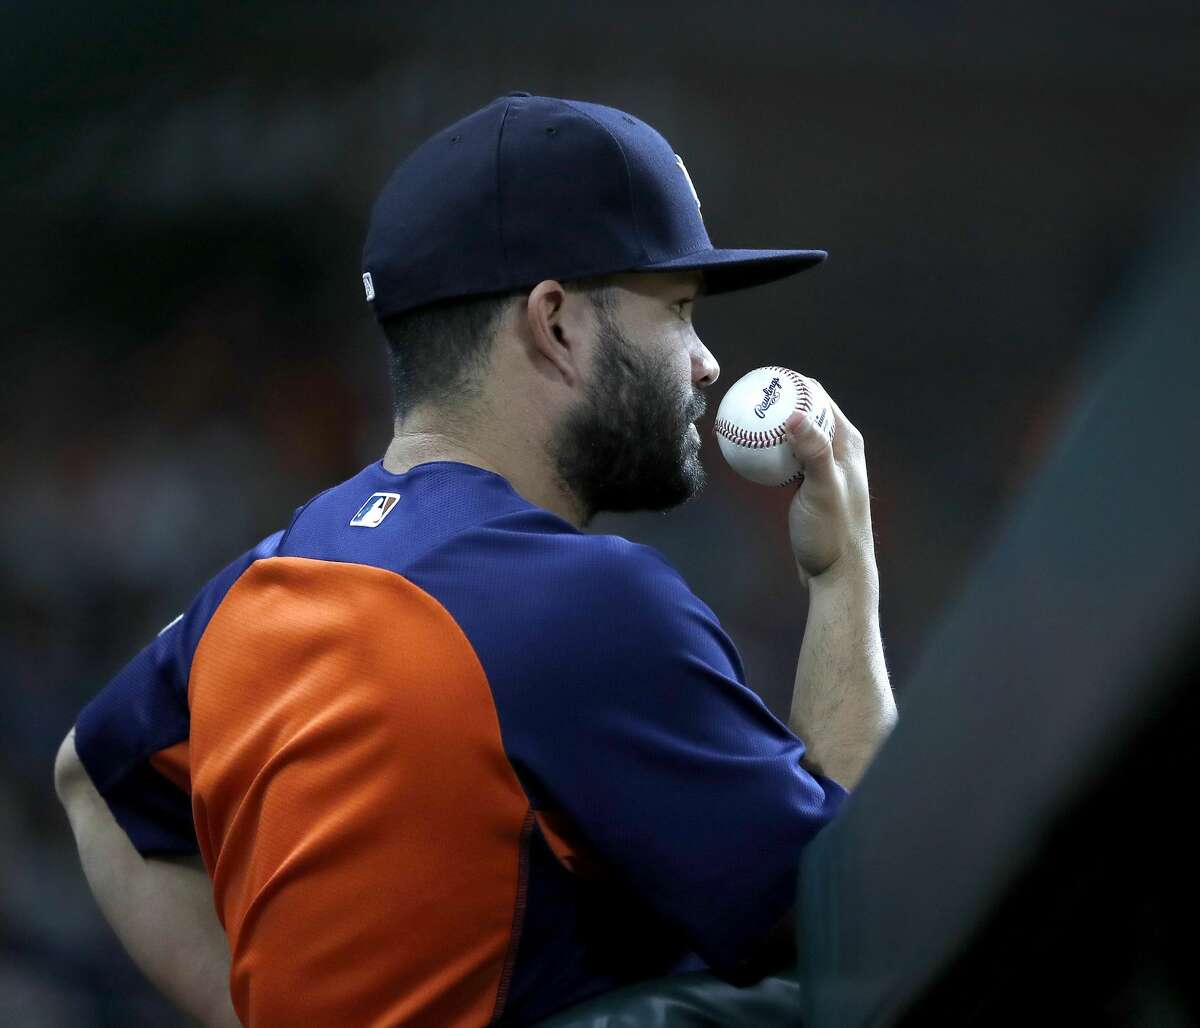 Houston Astros Jose Altuve (27) watches during the second inning of an MLB game at Minute Maid Park, Thursday, August 9, 2018, in Houston.